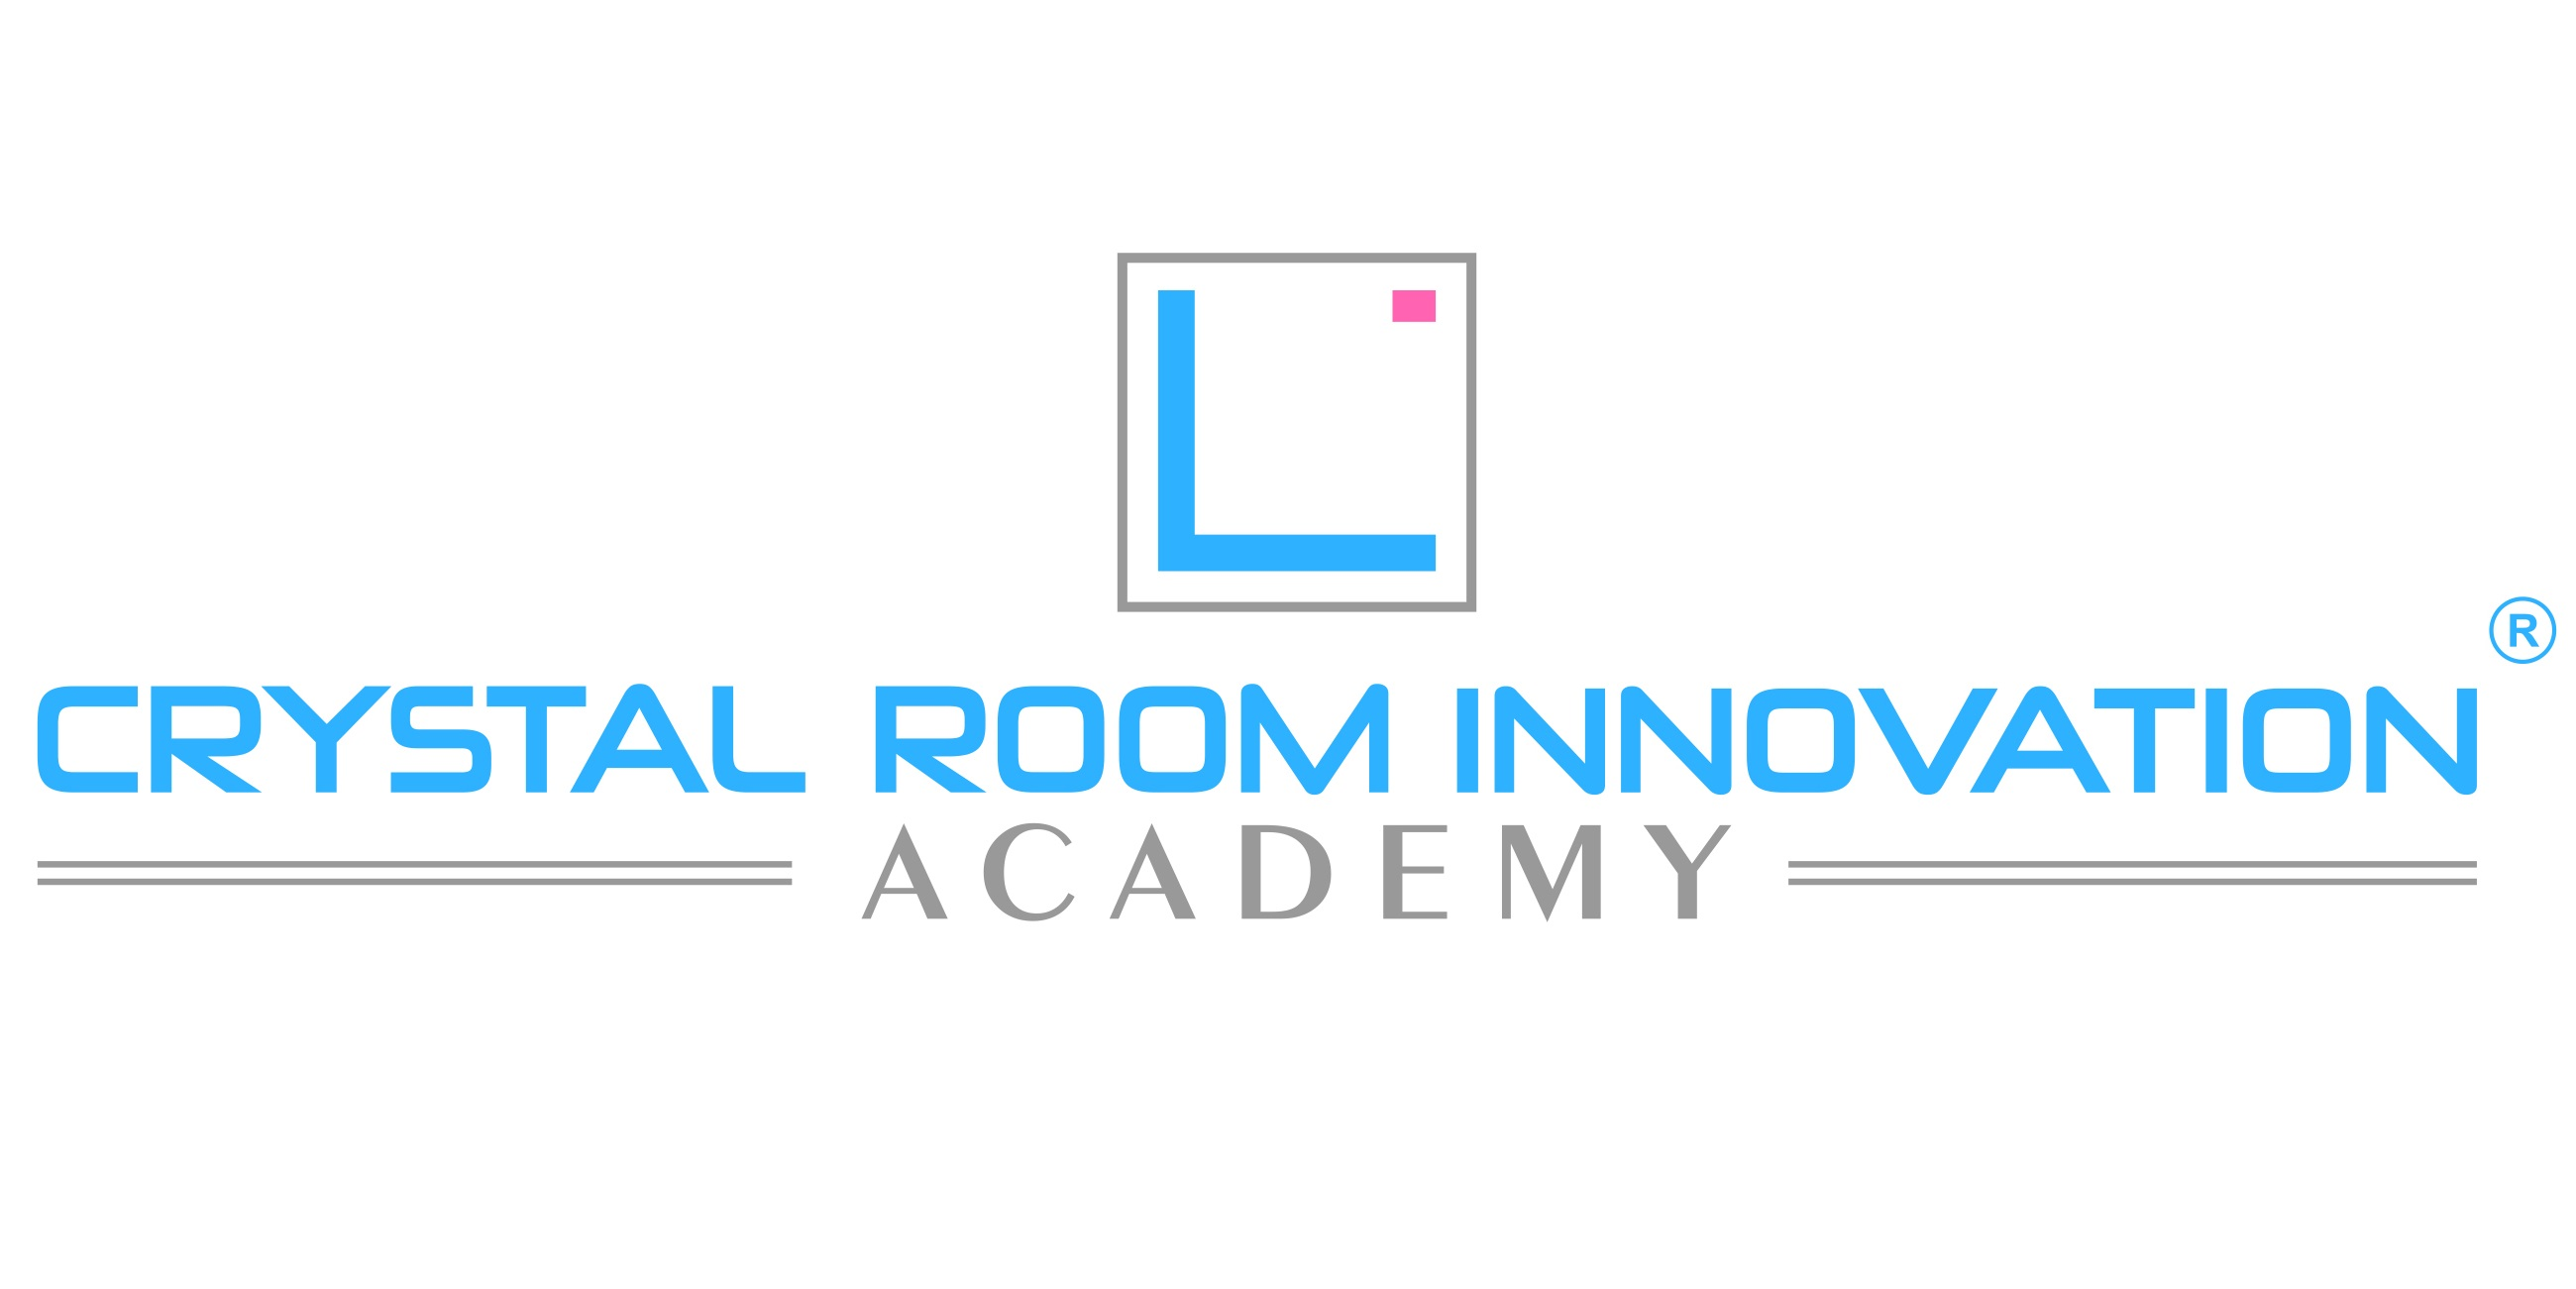 Crystal Room Innovation Academy